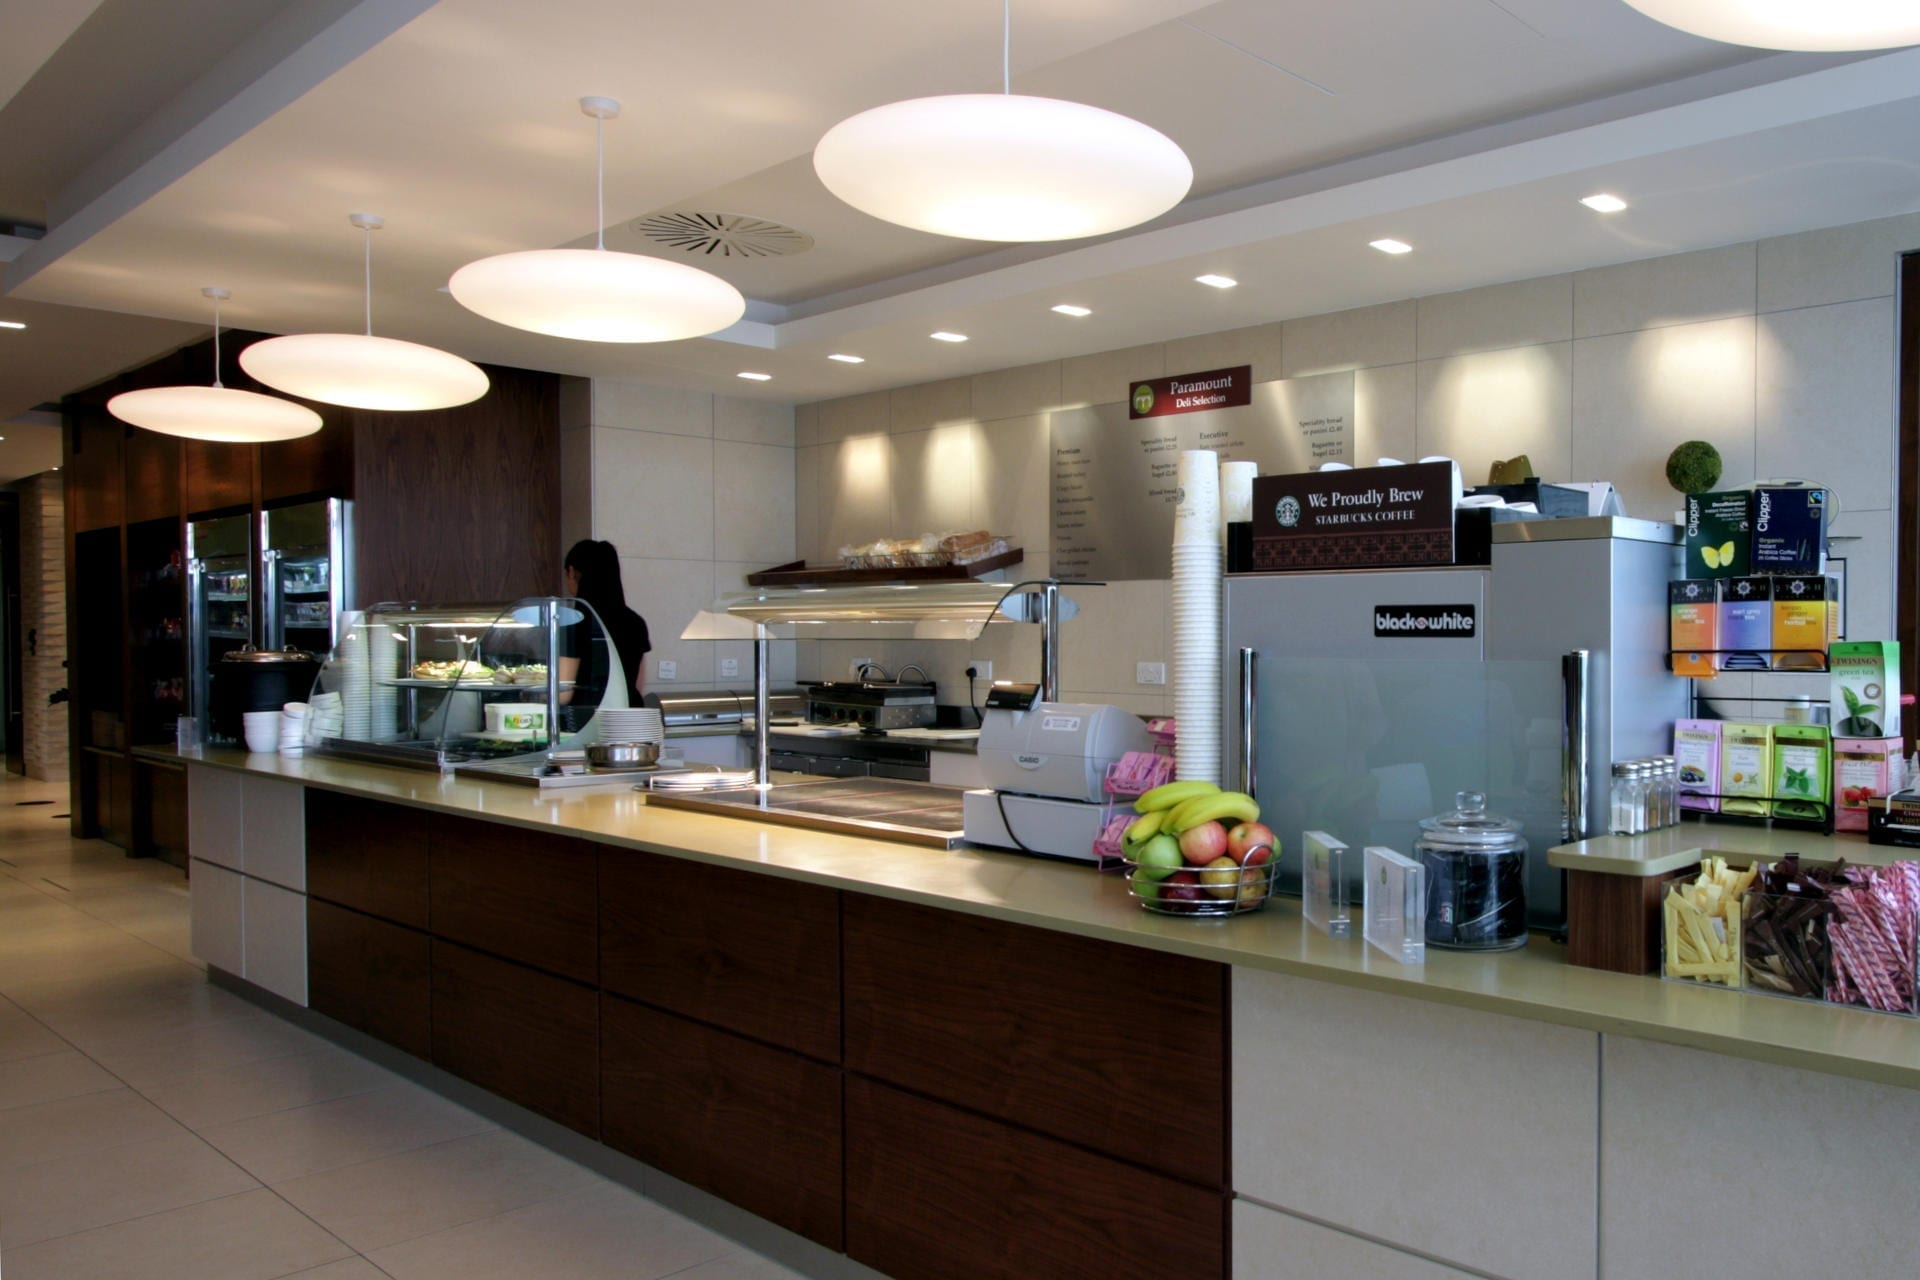 Paramount-Pictures-Charlton-House-Catering-Chiswick-Servery-Front-of-house-Servery-Food-Display-spacecatering_3